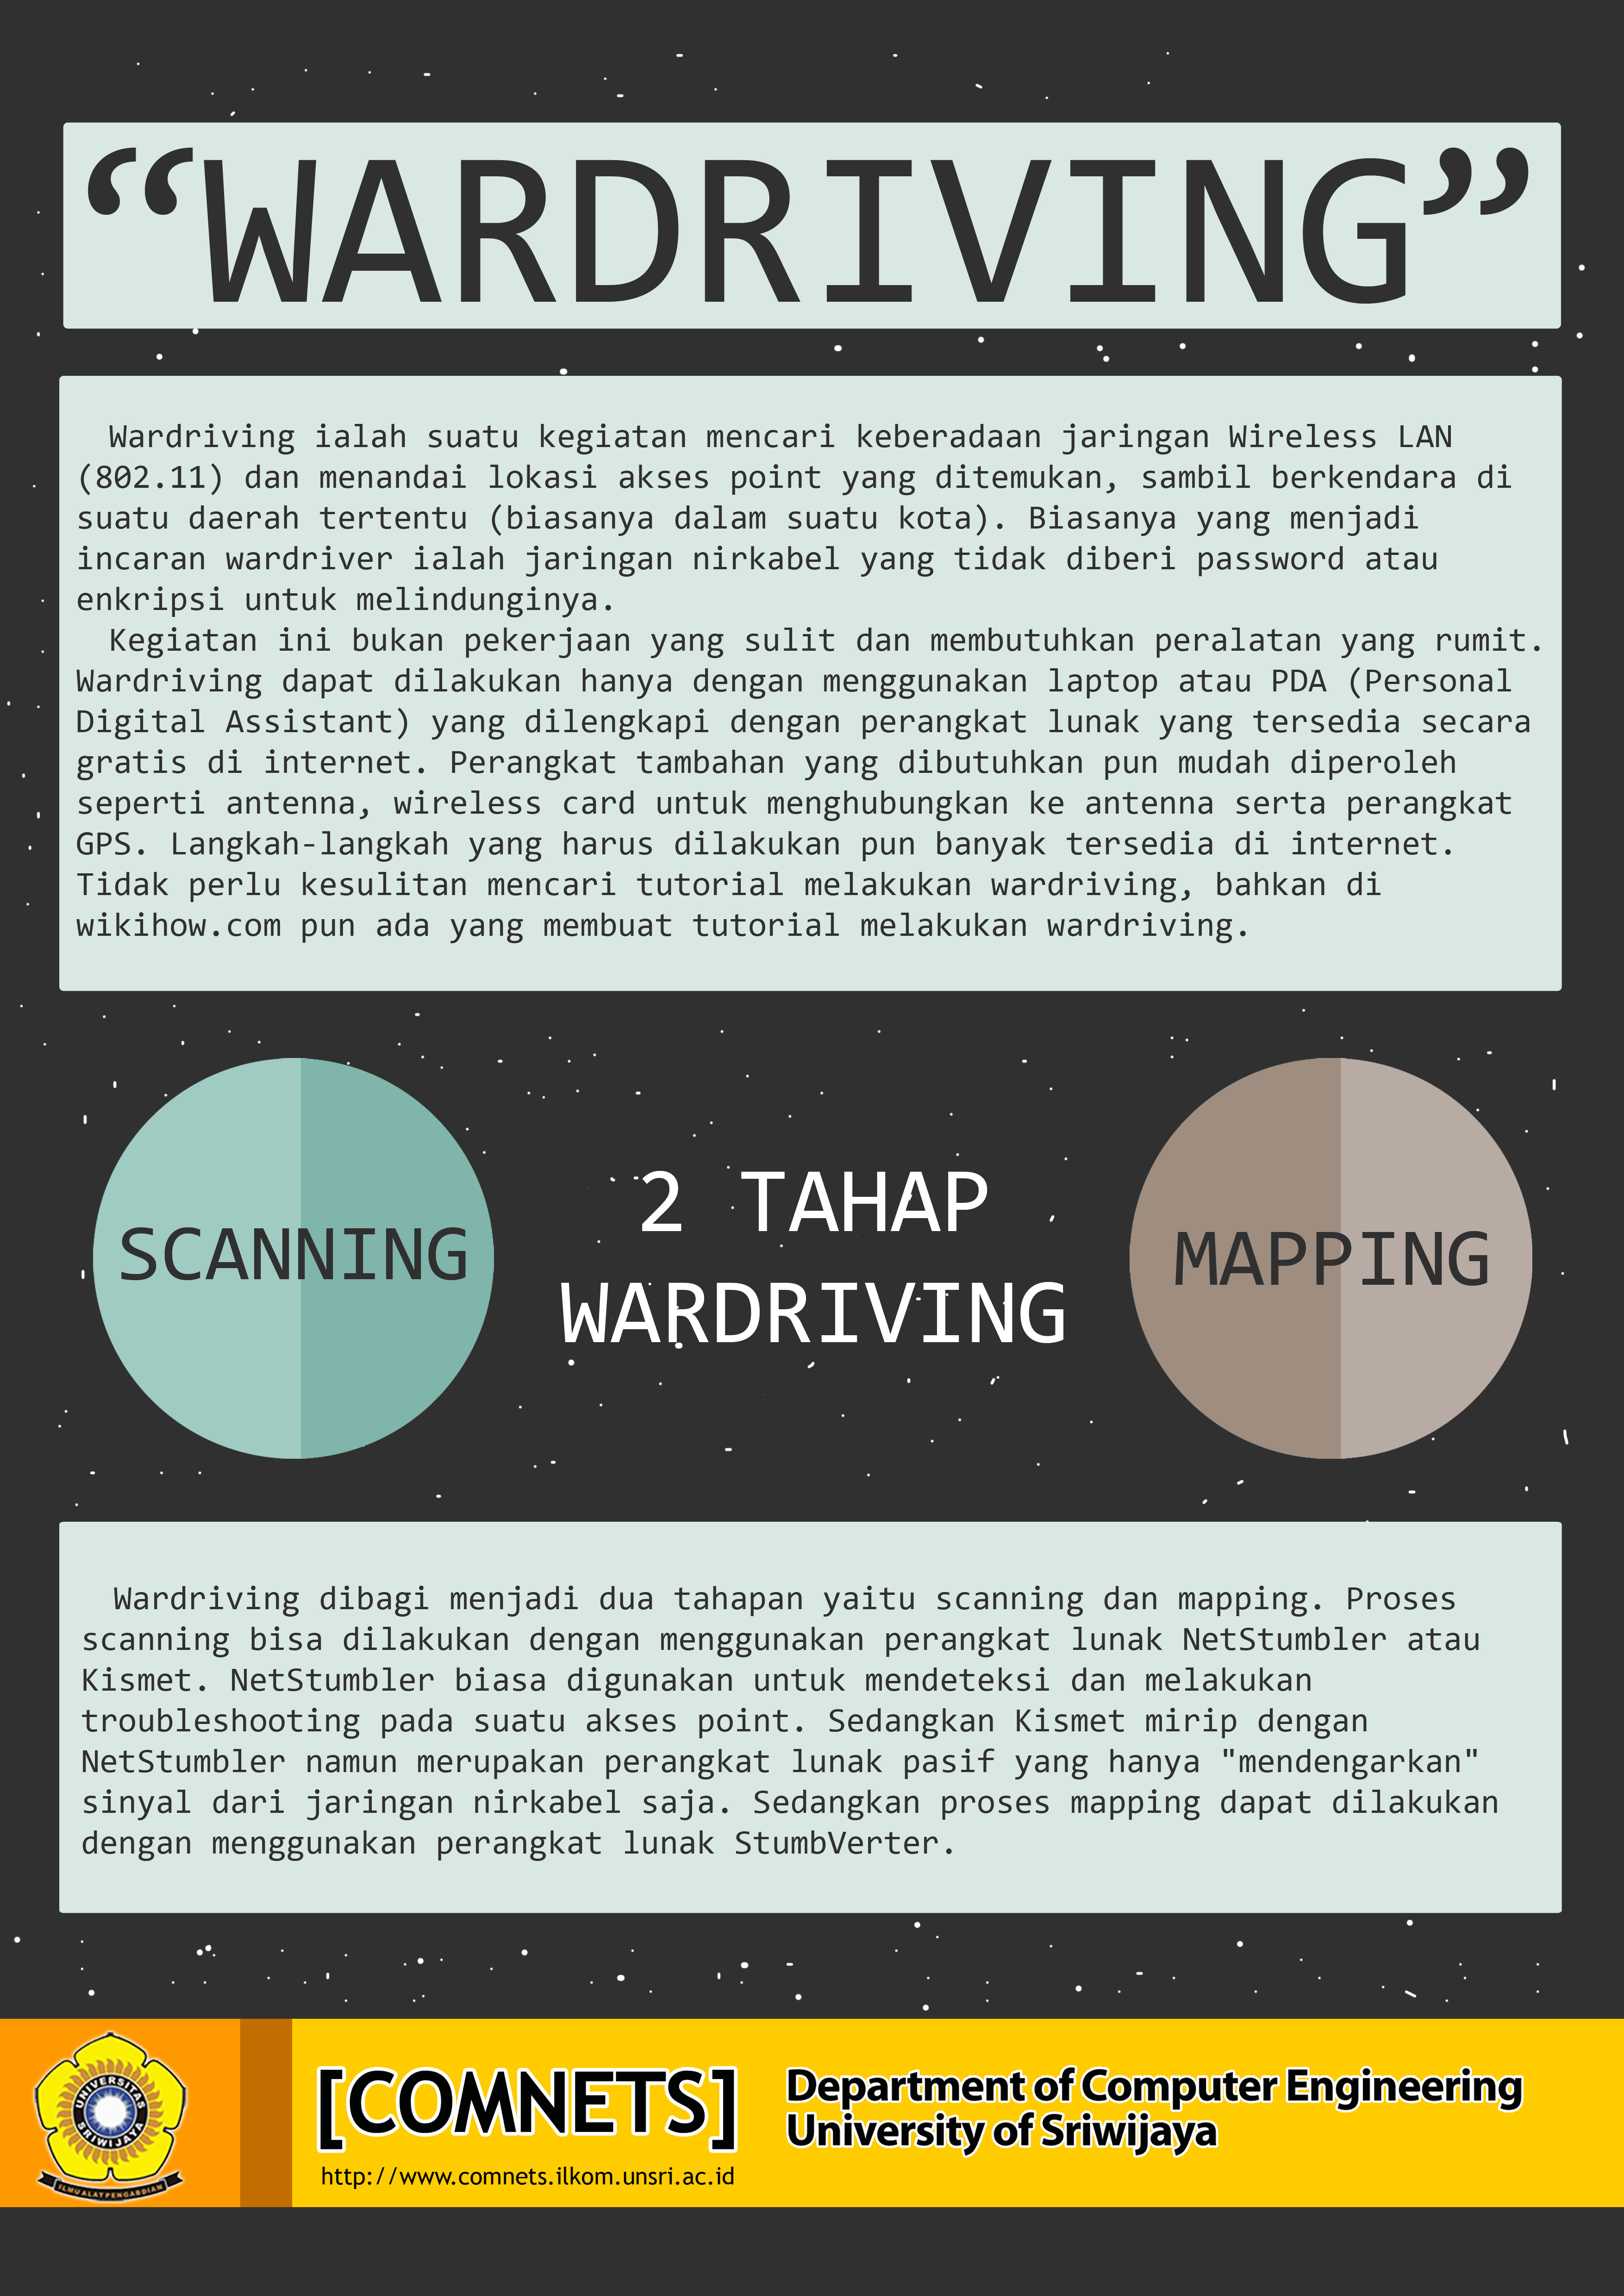 poster : Wardriving - E-Documents Fasilkom Unsri